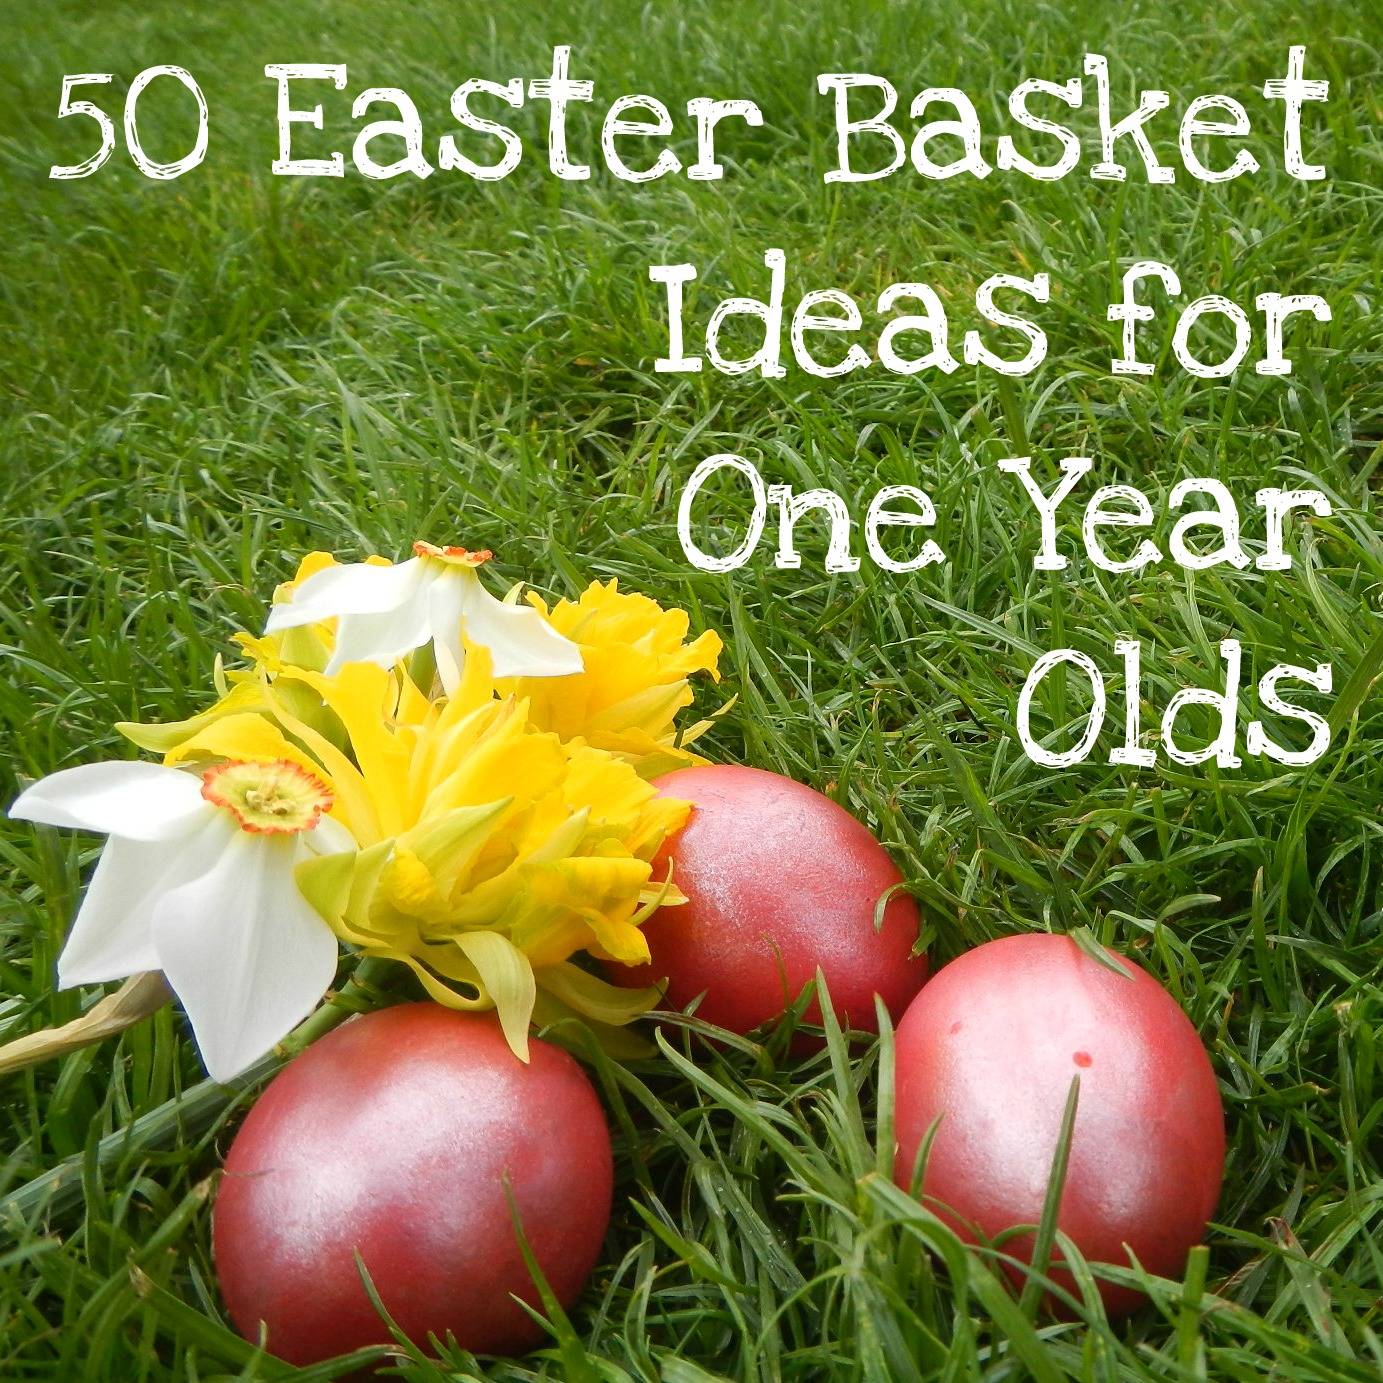 Messy wife blessed life 50 easter basket ideas for one year olds 50 easter basket ideas for one year olds negle Choice Image